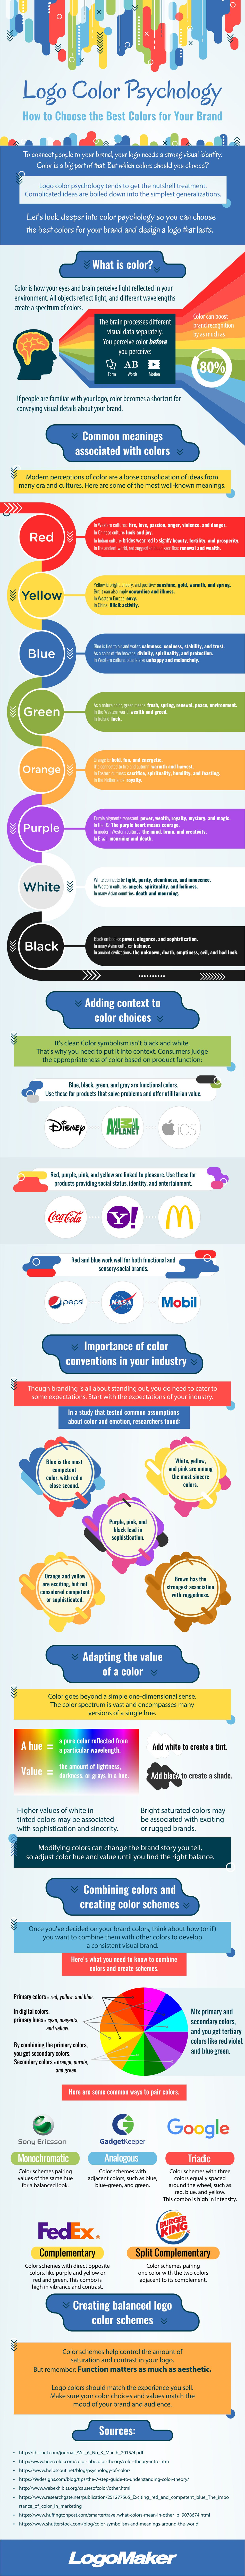 logo-color-psychology